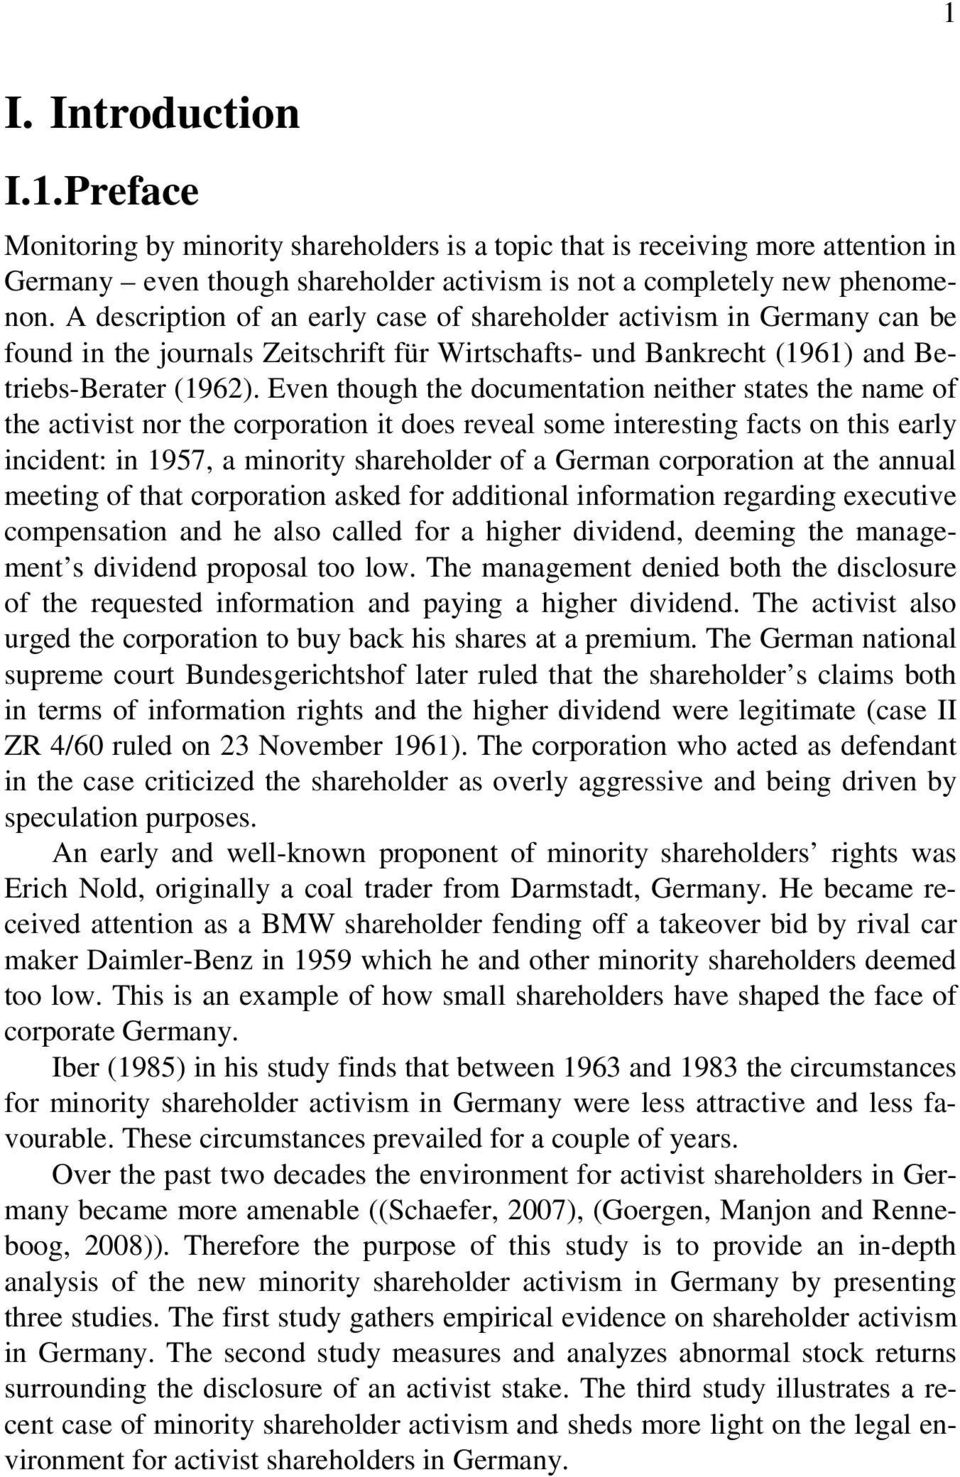 Even though the documentation neither states the name of the activist nor the corporation it does reveal some interesting facts on this early incident: in 1957, a minority shareholder of a German